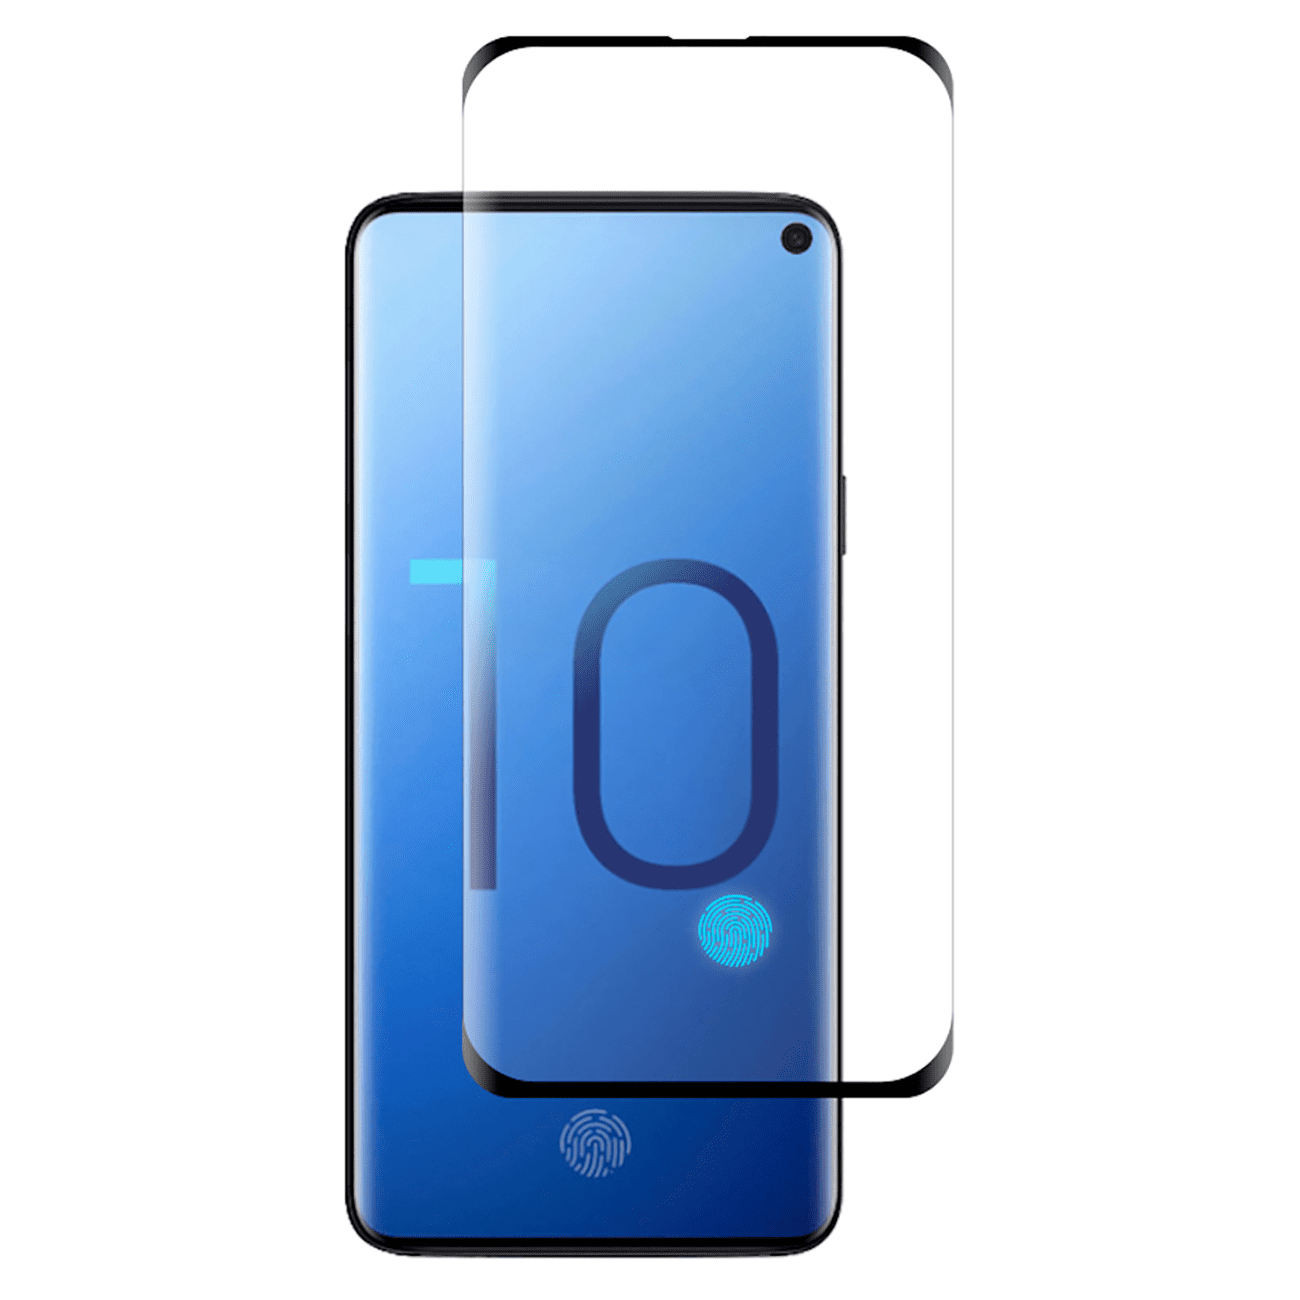 ISTIK SAMSUNG GALAXY S10 3D CURVED FULL COVERAGE TEMPERED GLASS SCREEN PROTECTOR